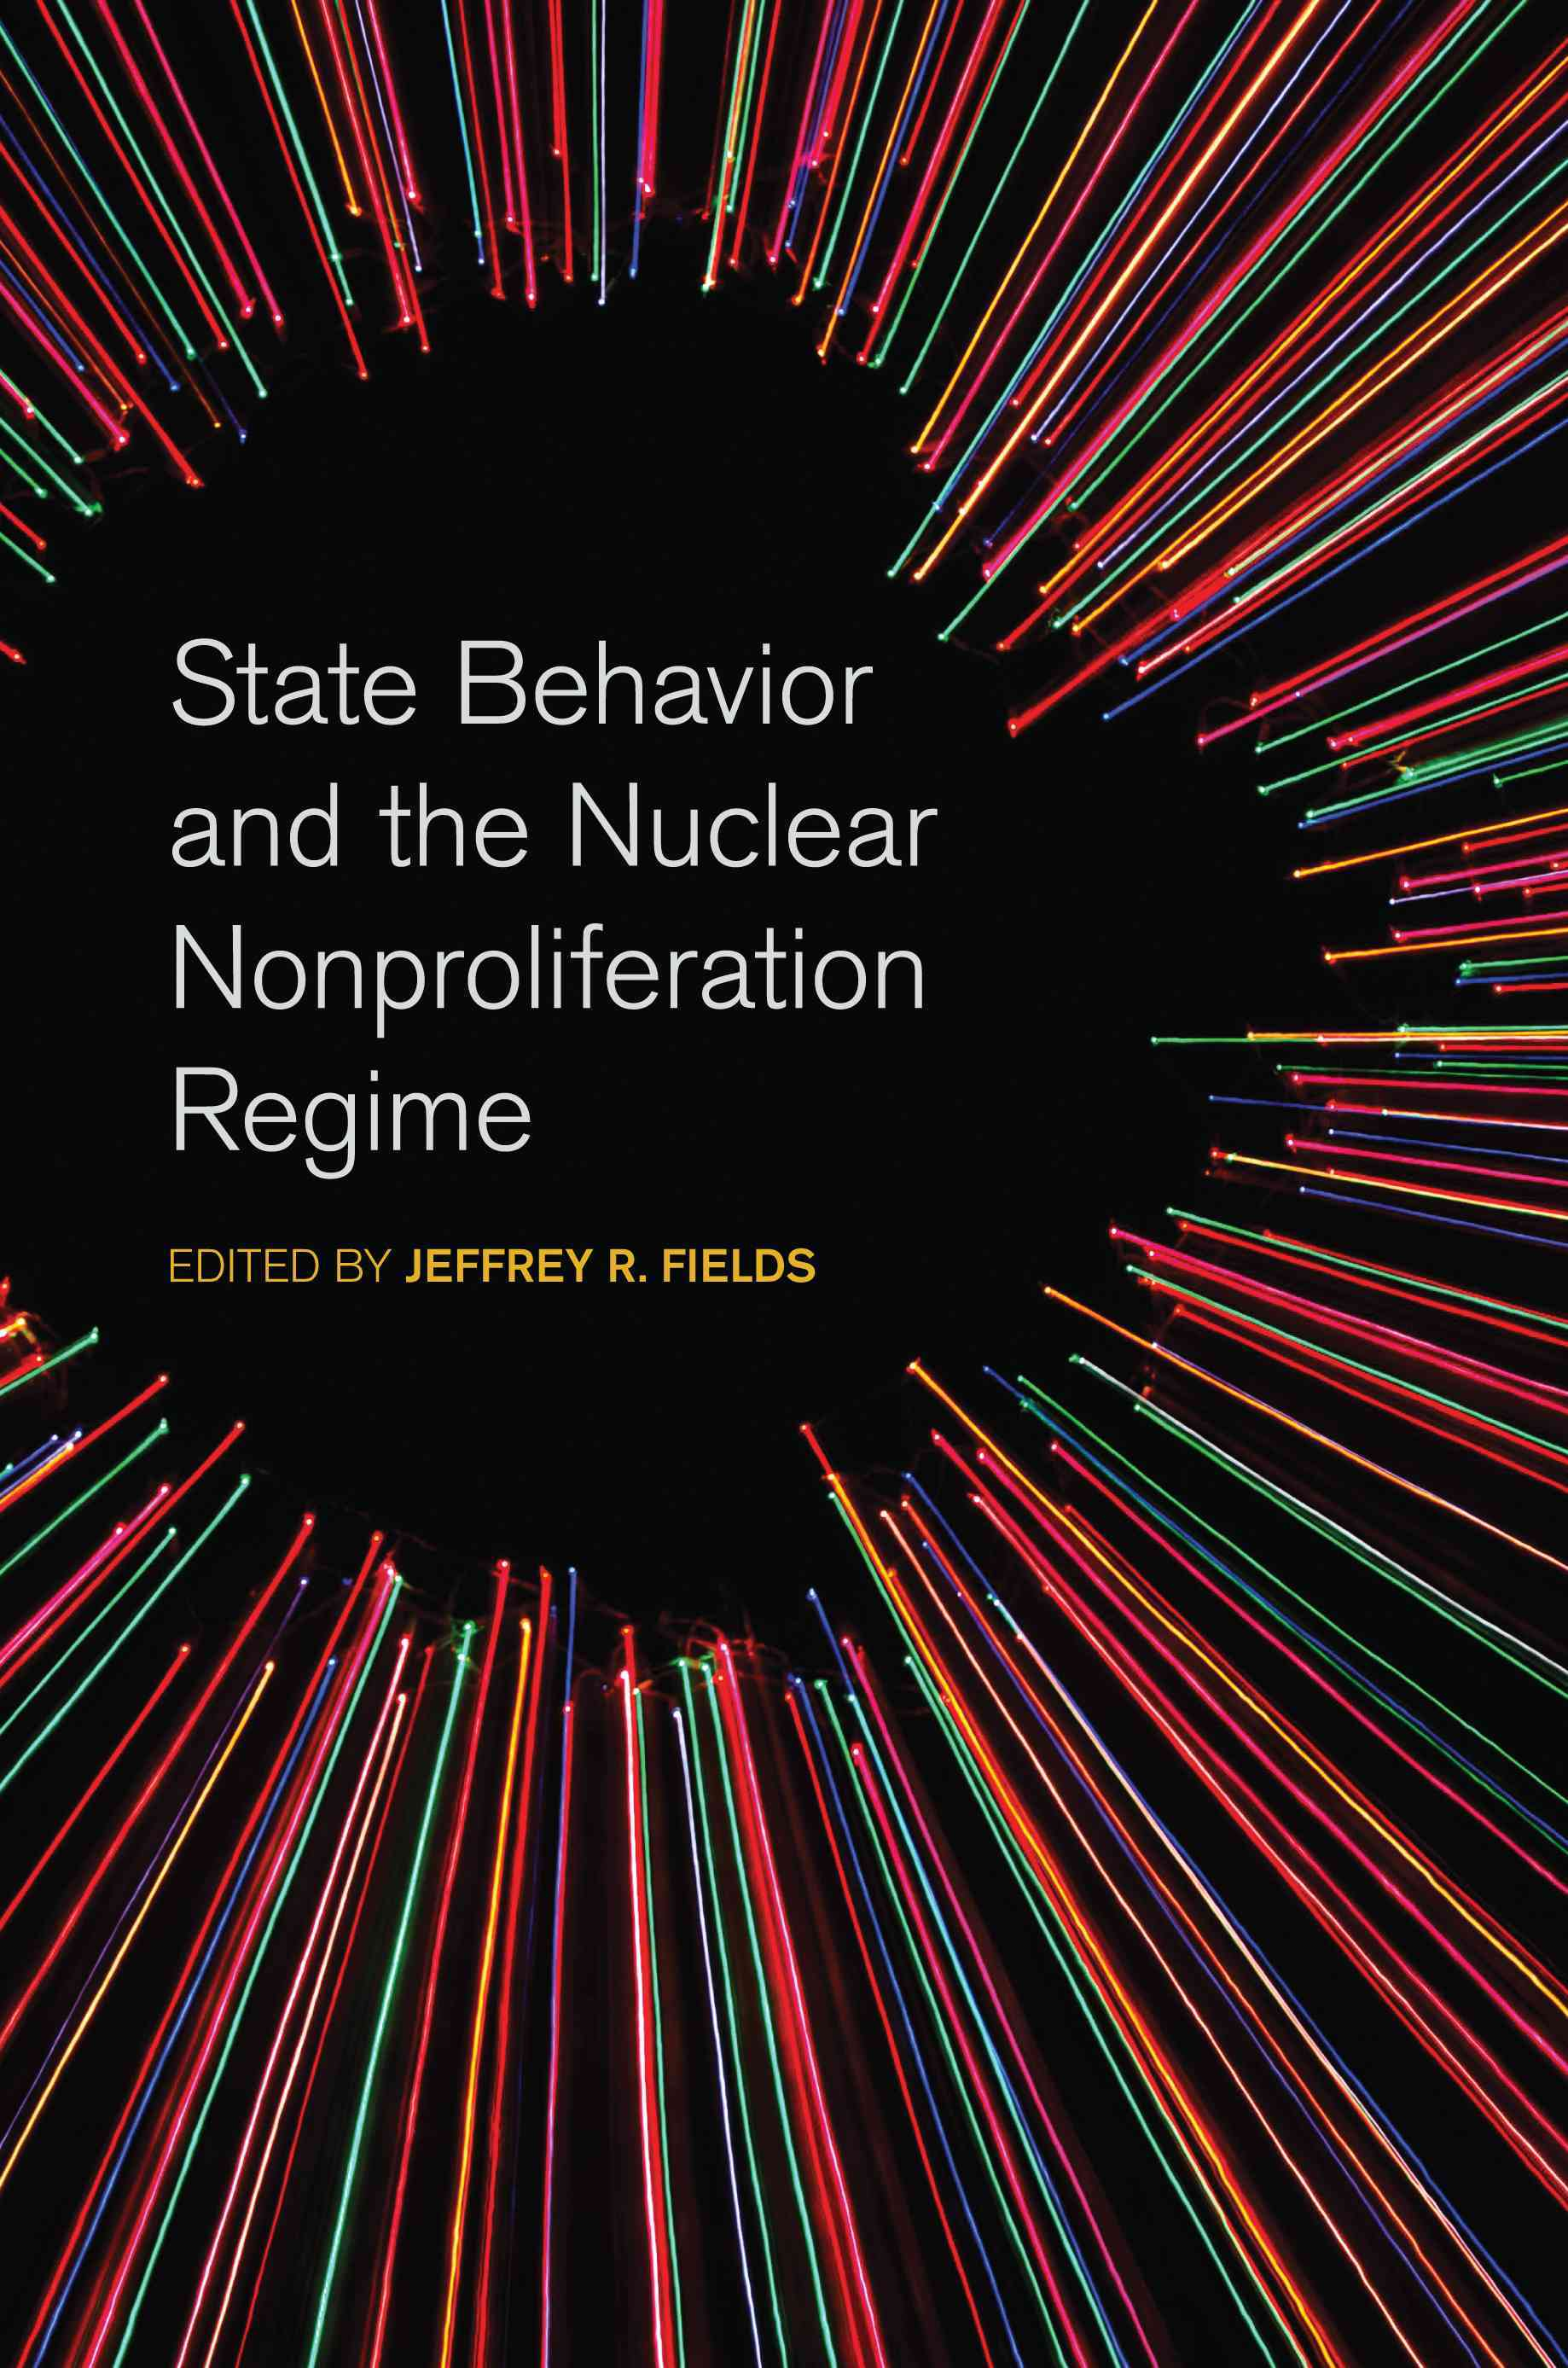 State Behavior and the Nuclear Nonproliferation Regime By Fields, Jeffrey R. (EDT)